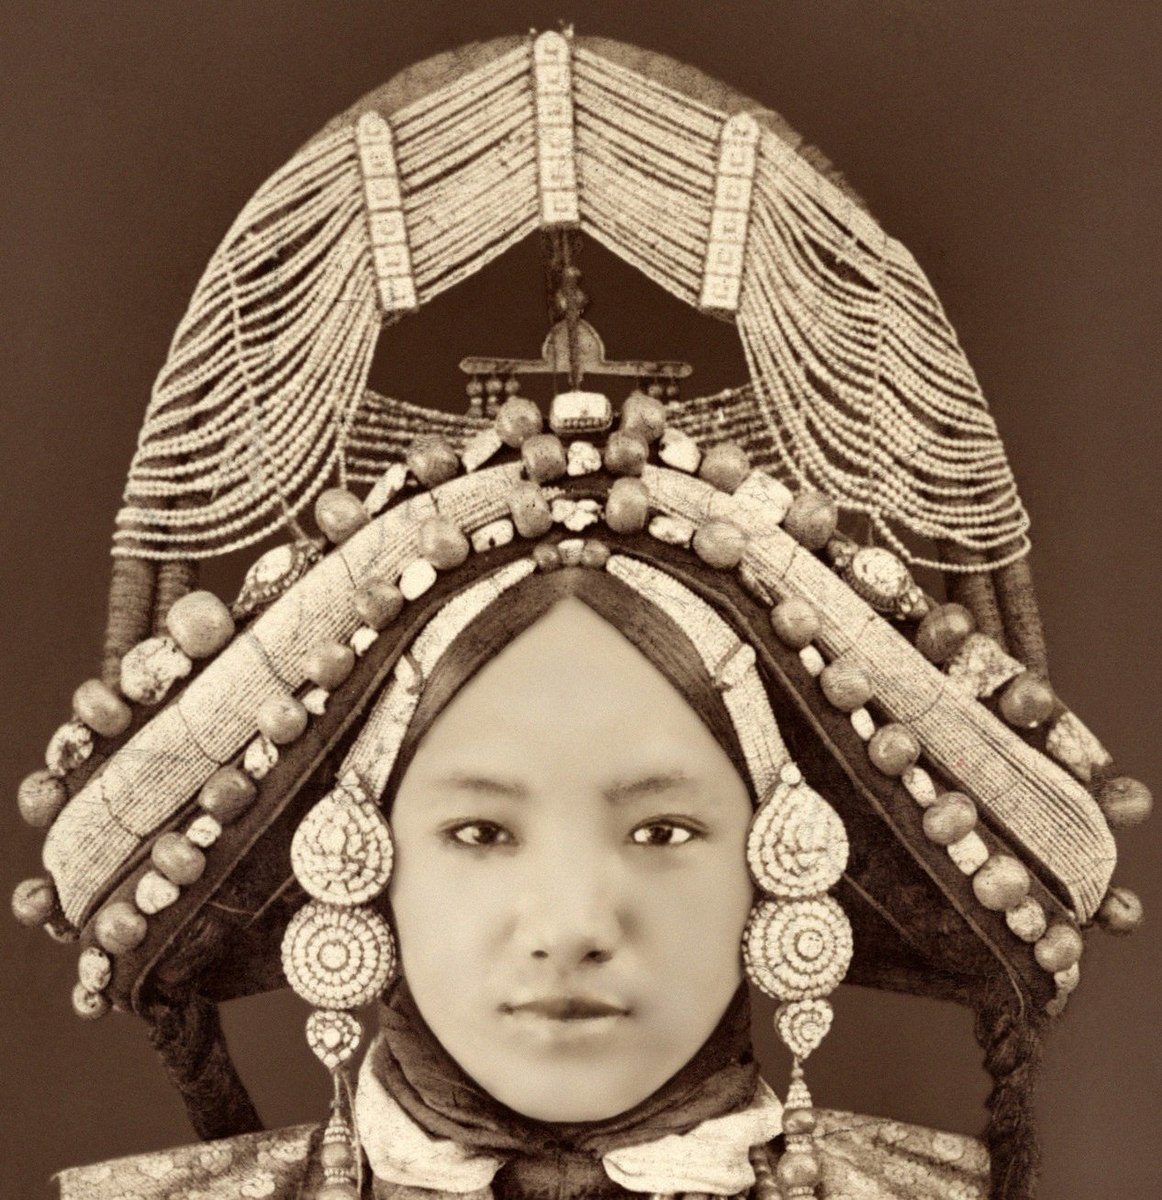 A Tibetan woman, from 1879: crown-shaped ornament studded with precious stones and pearls of every size. Pearl necklaces, strings of amber and coral hung over her breast, and her clothes were of the richest Chinese satin brocades and the finest native cloth.  Creative Commons Attribution 2.0 Generic via Wikipedia.